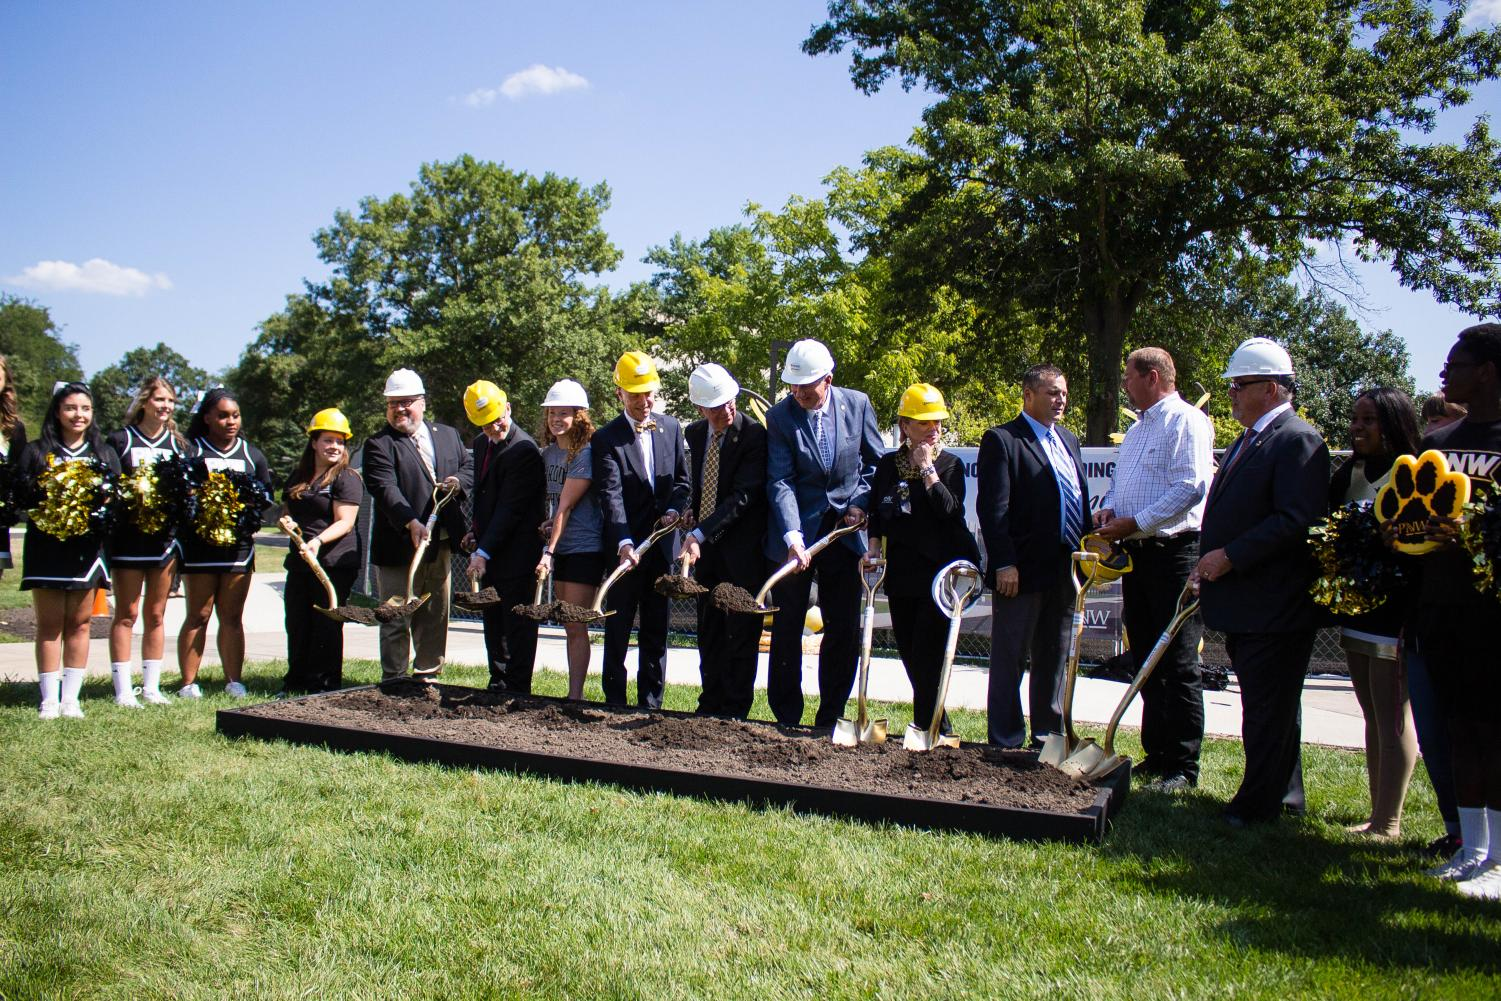 PNW administrators, construction and design firm owners, local government officials and PNW students all broke ground together during the ceremony on Aug. 23. The building will be a two-year project and is expected to be completed in 2020.